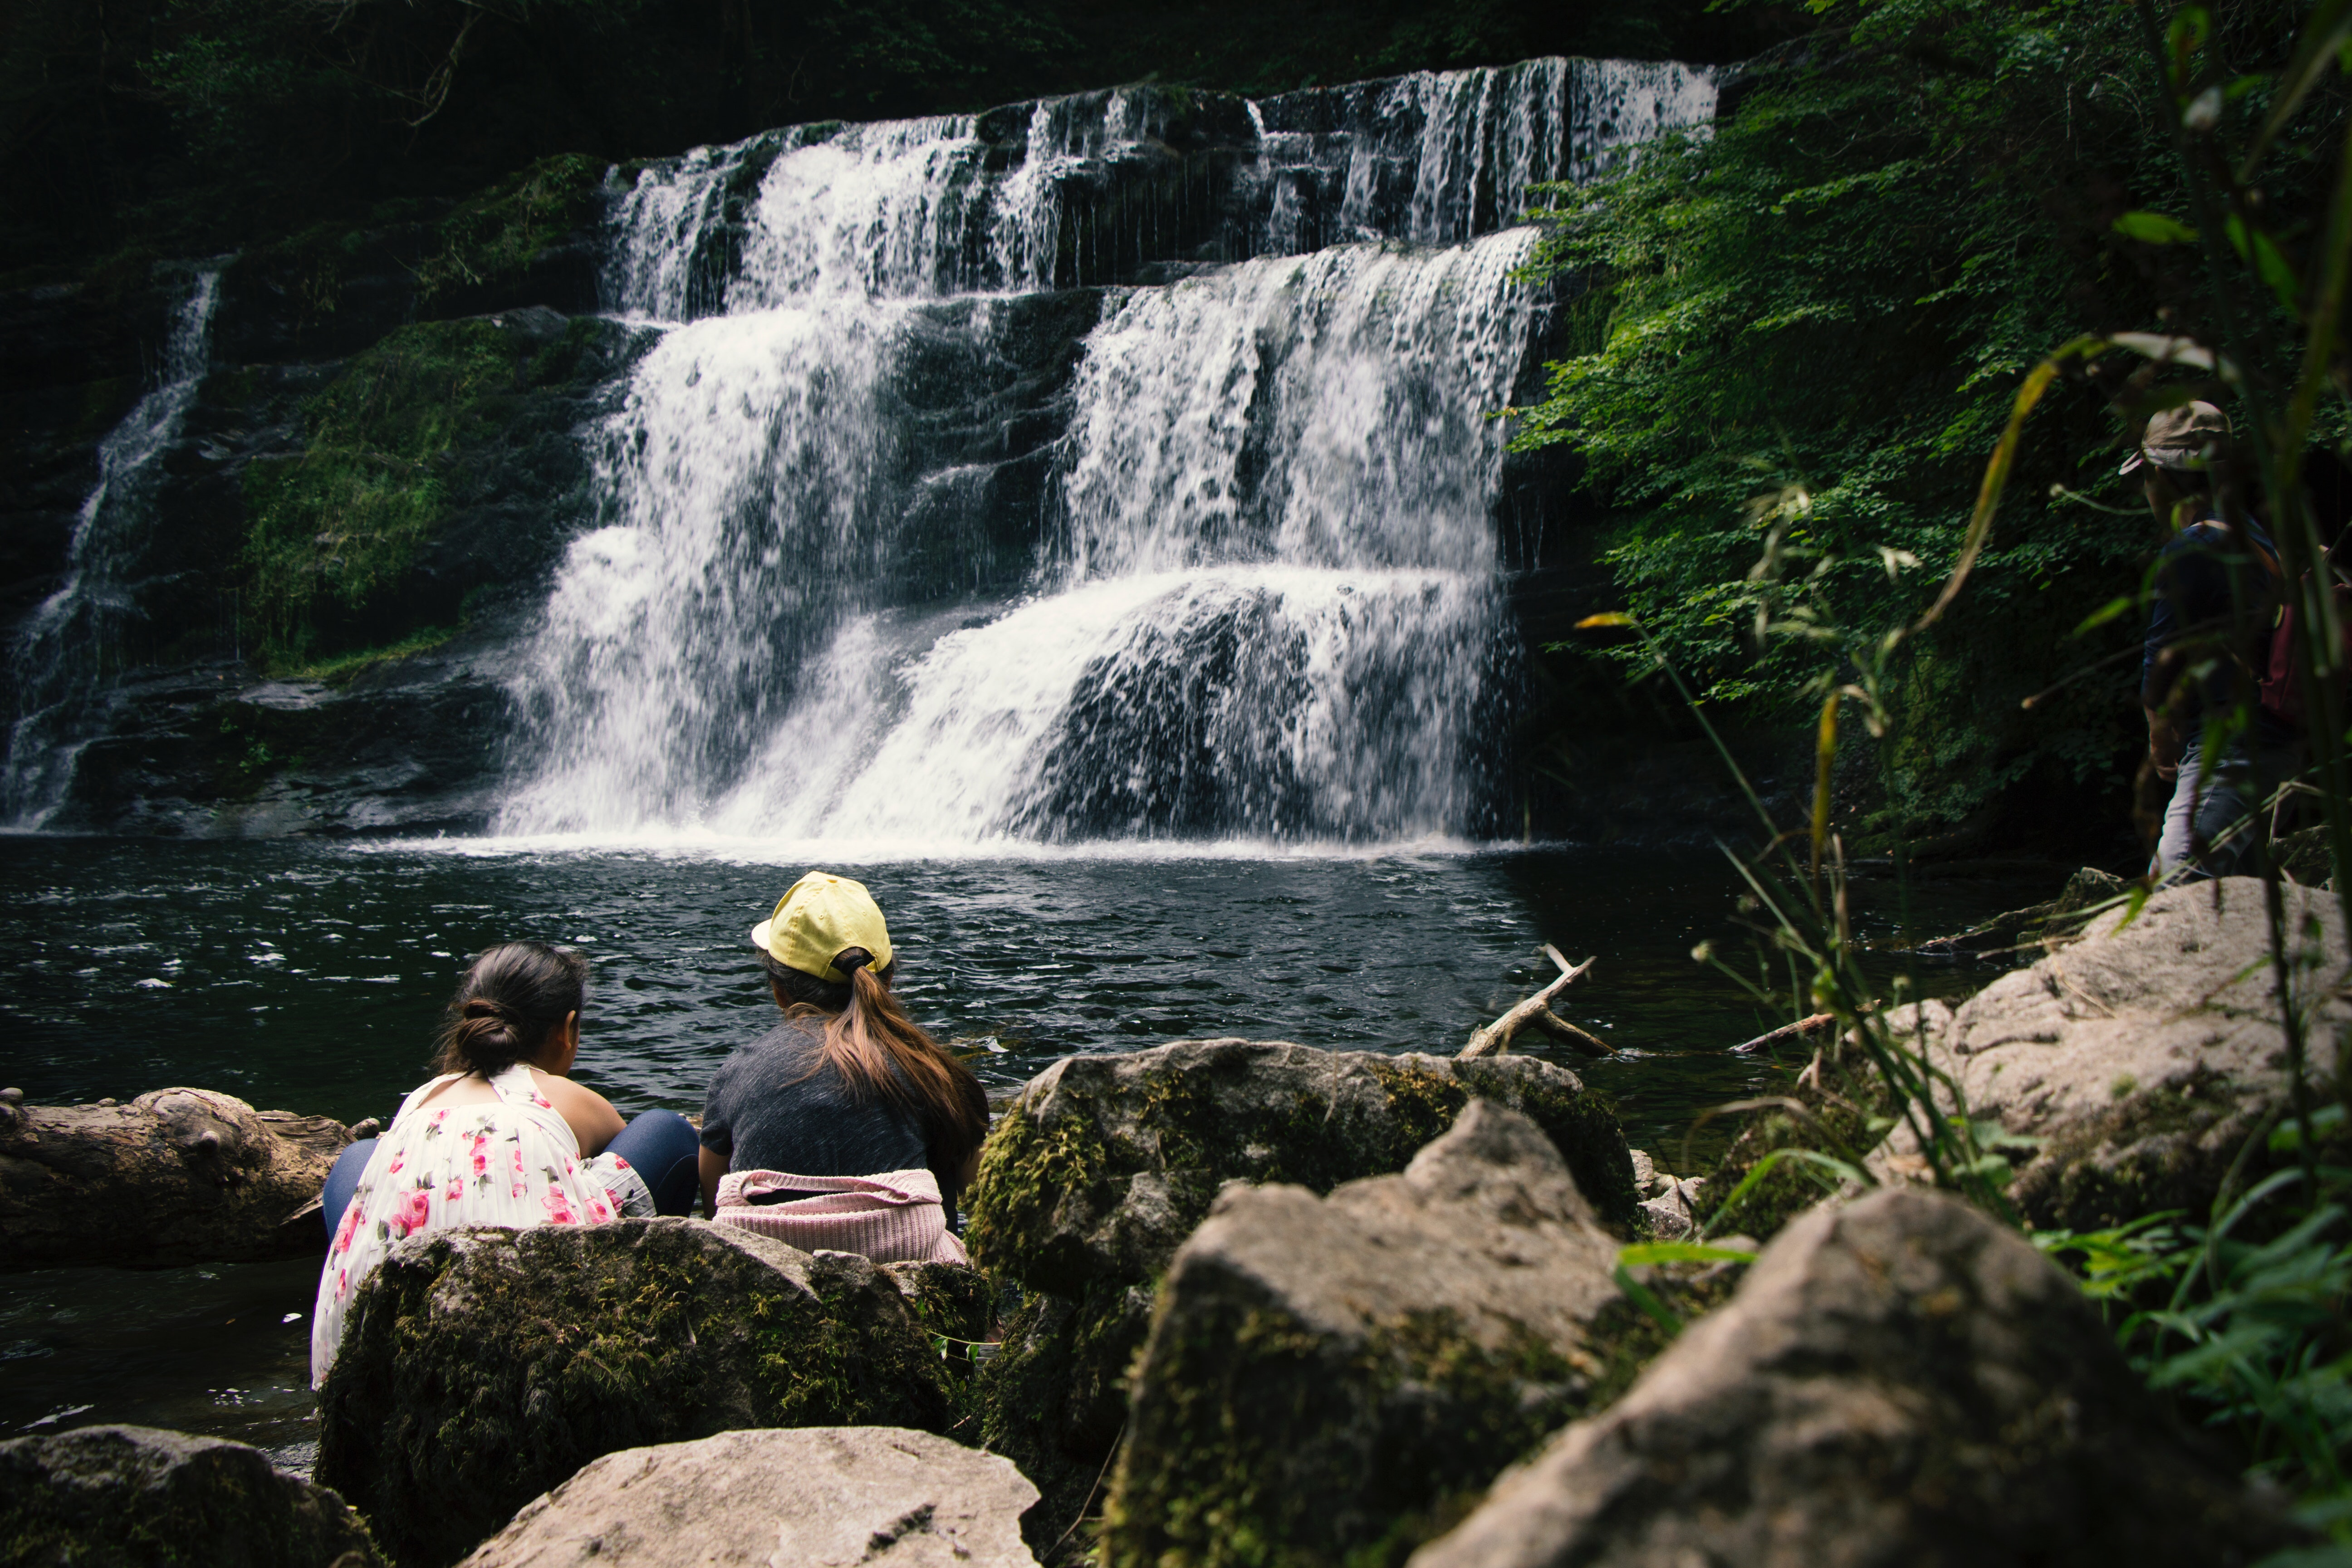 Two women sit in front of waterfall